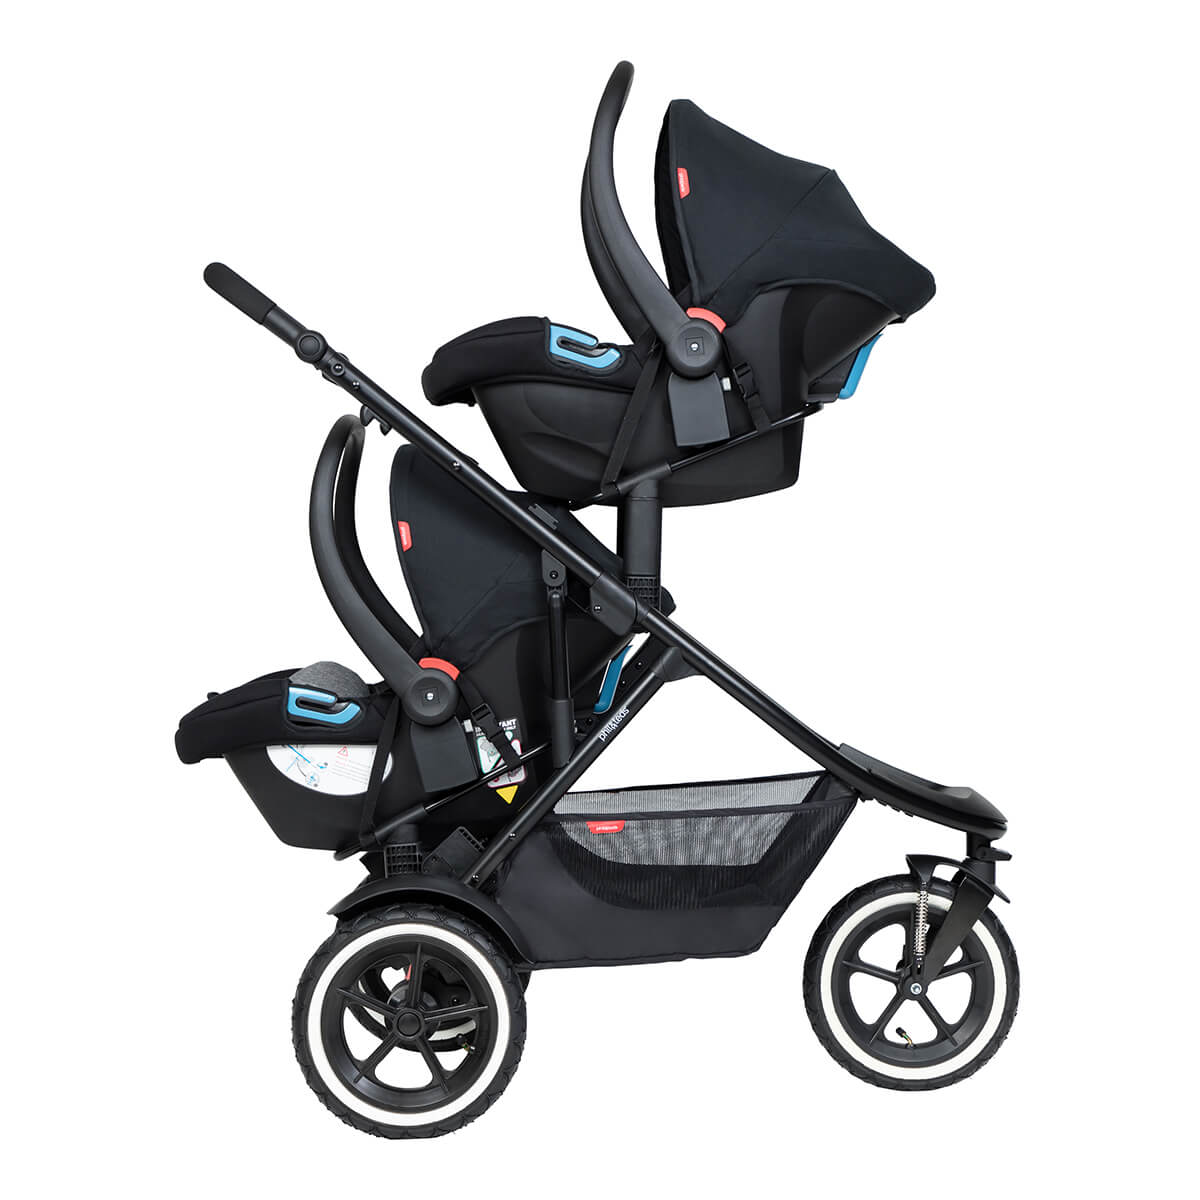 https://cdn.accentuate.io/4546157510761/19119322923113/philteds-sport-buggy-with-double-alpha-travel-system-v1625778227517.jpg?1200x1200